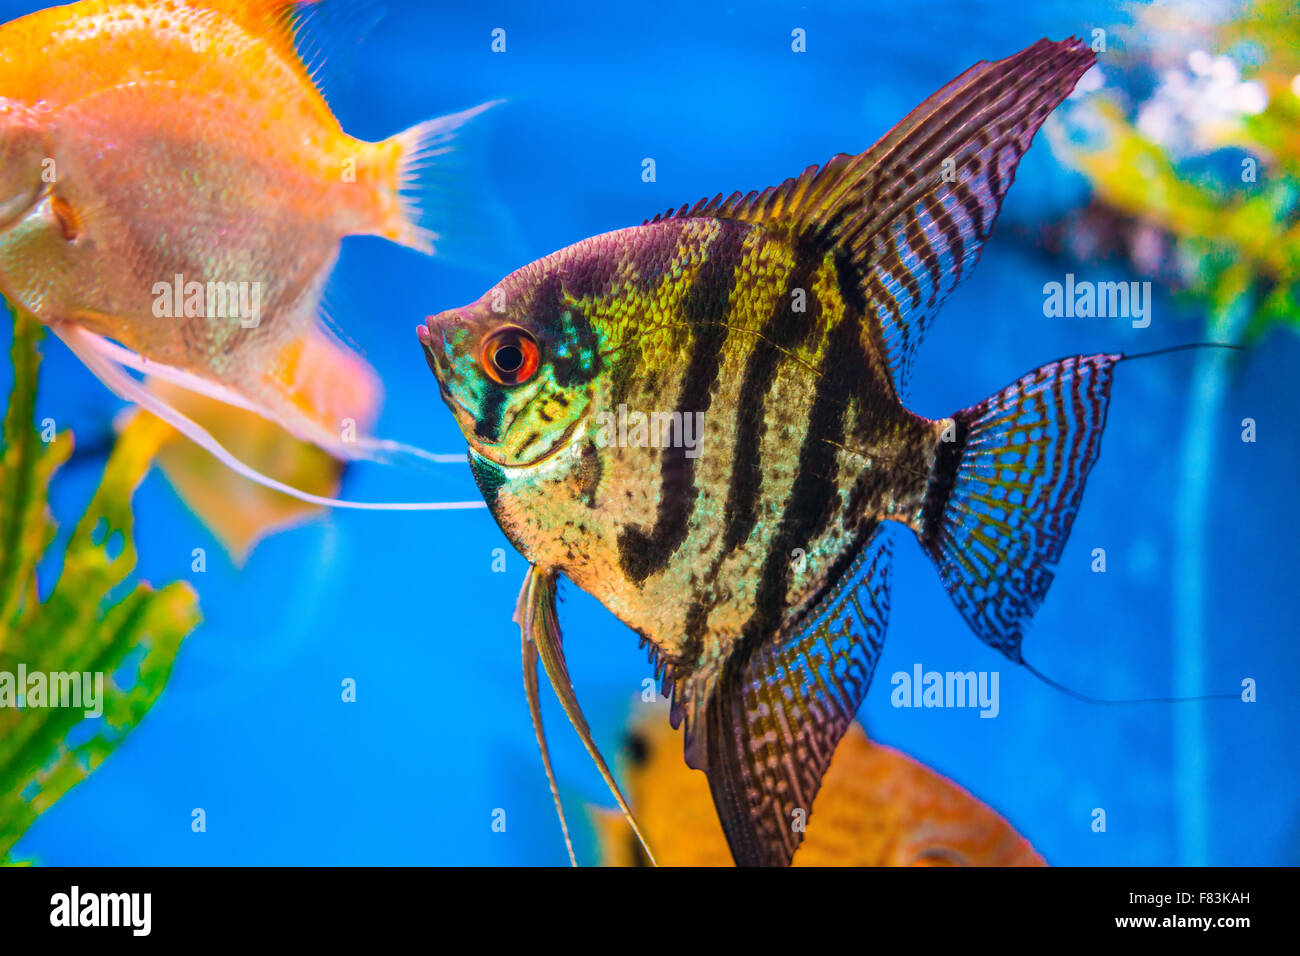 Black and yellow freshwater aquarium fish - Marbled Black And Yellow Long Finned Angel Fish Stock Photo